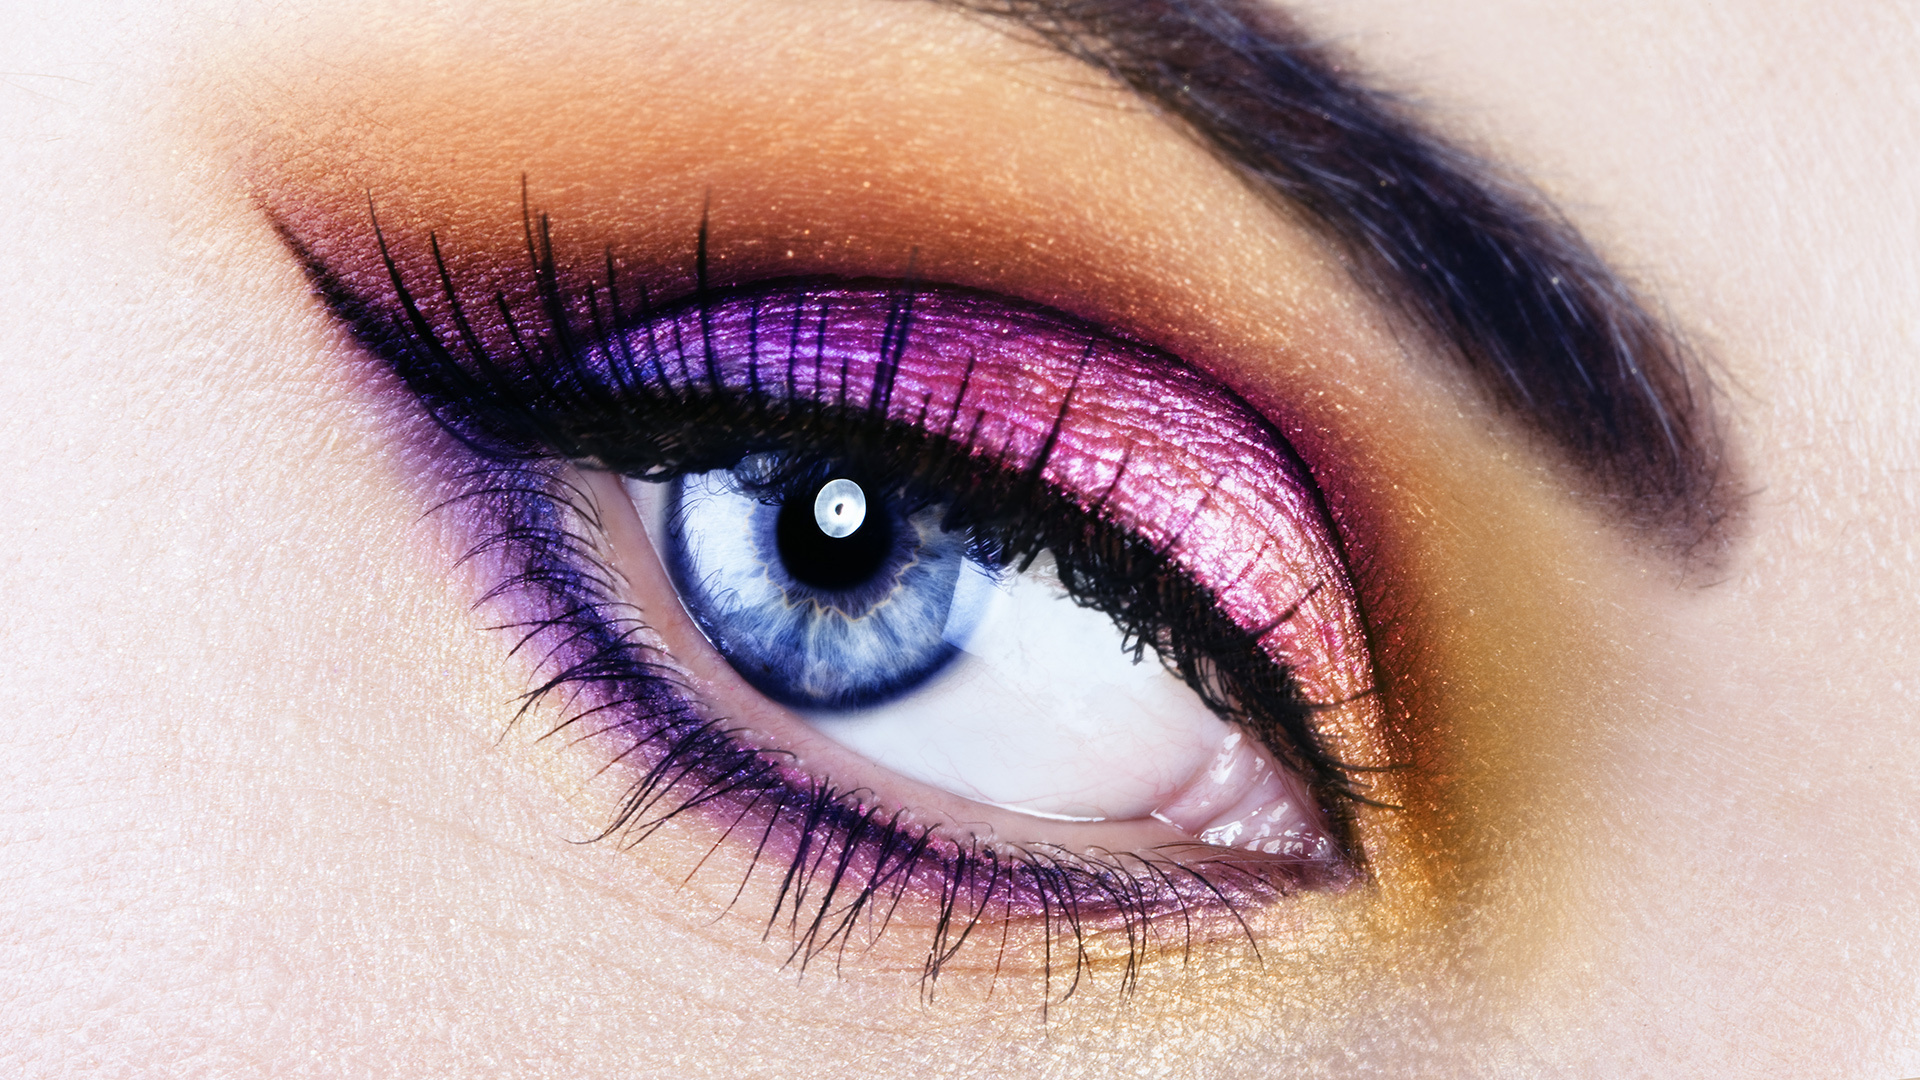 Images of eye makeup